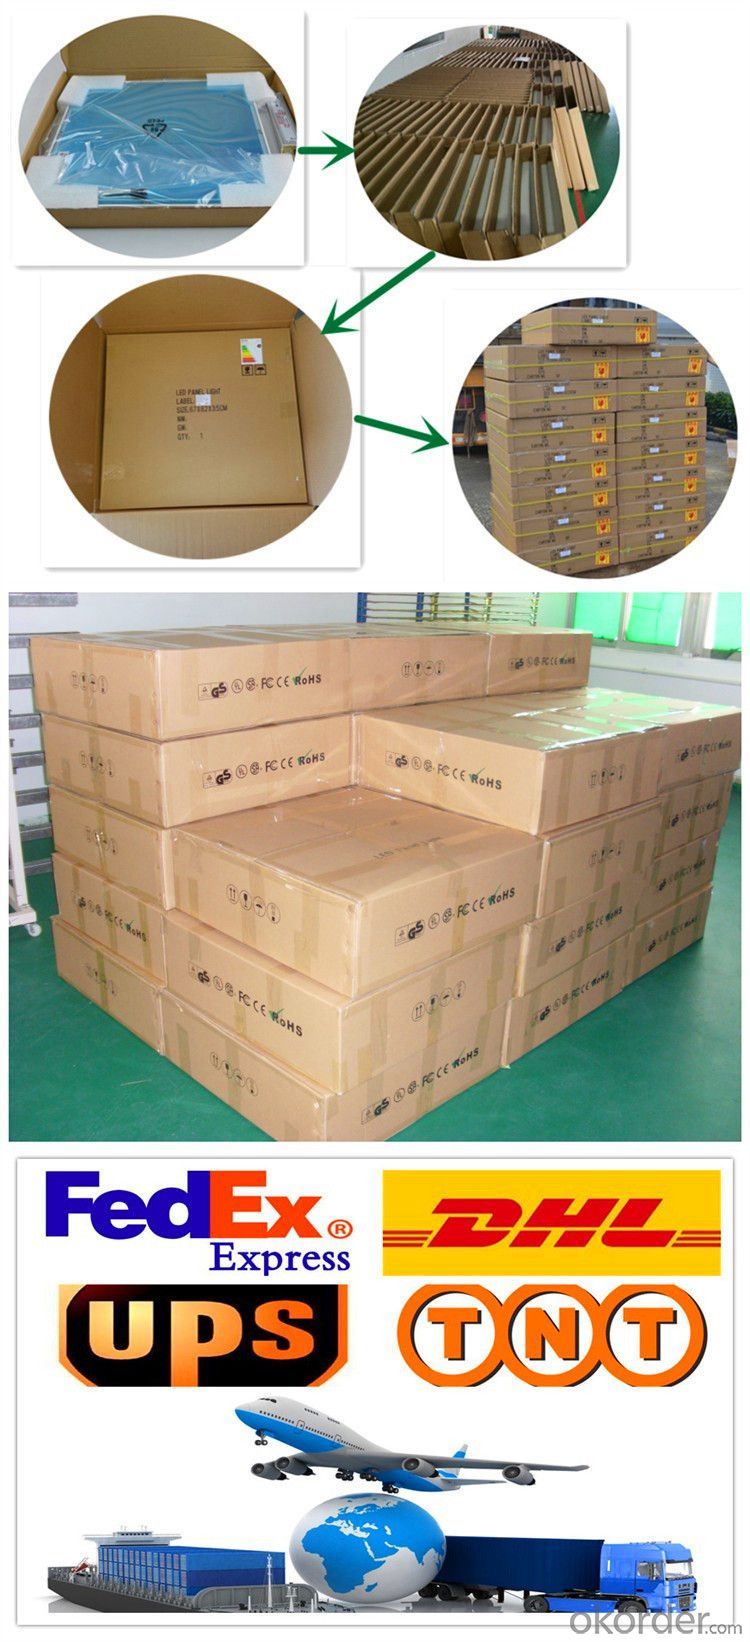 Troffer High CRI>90 embeded LED panel light 600x600mm 36w